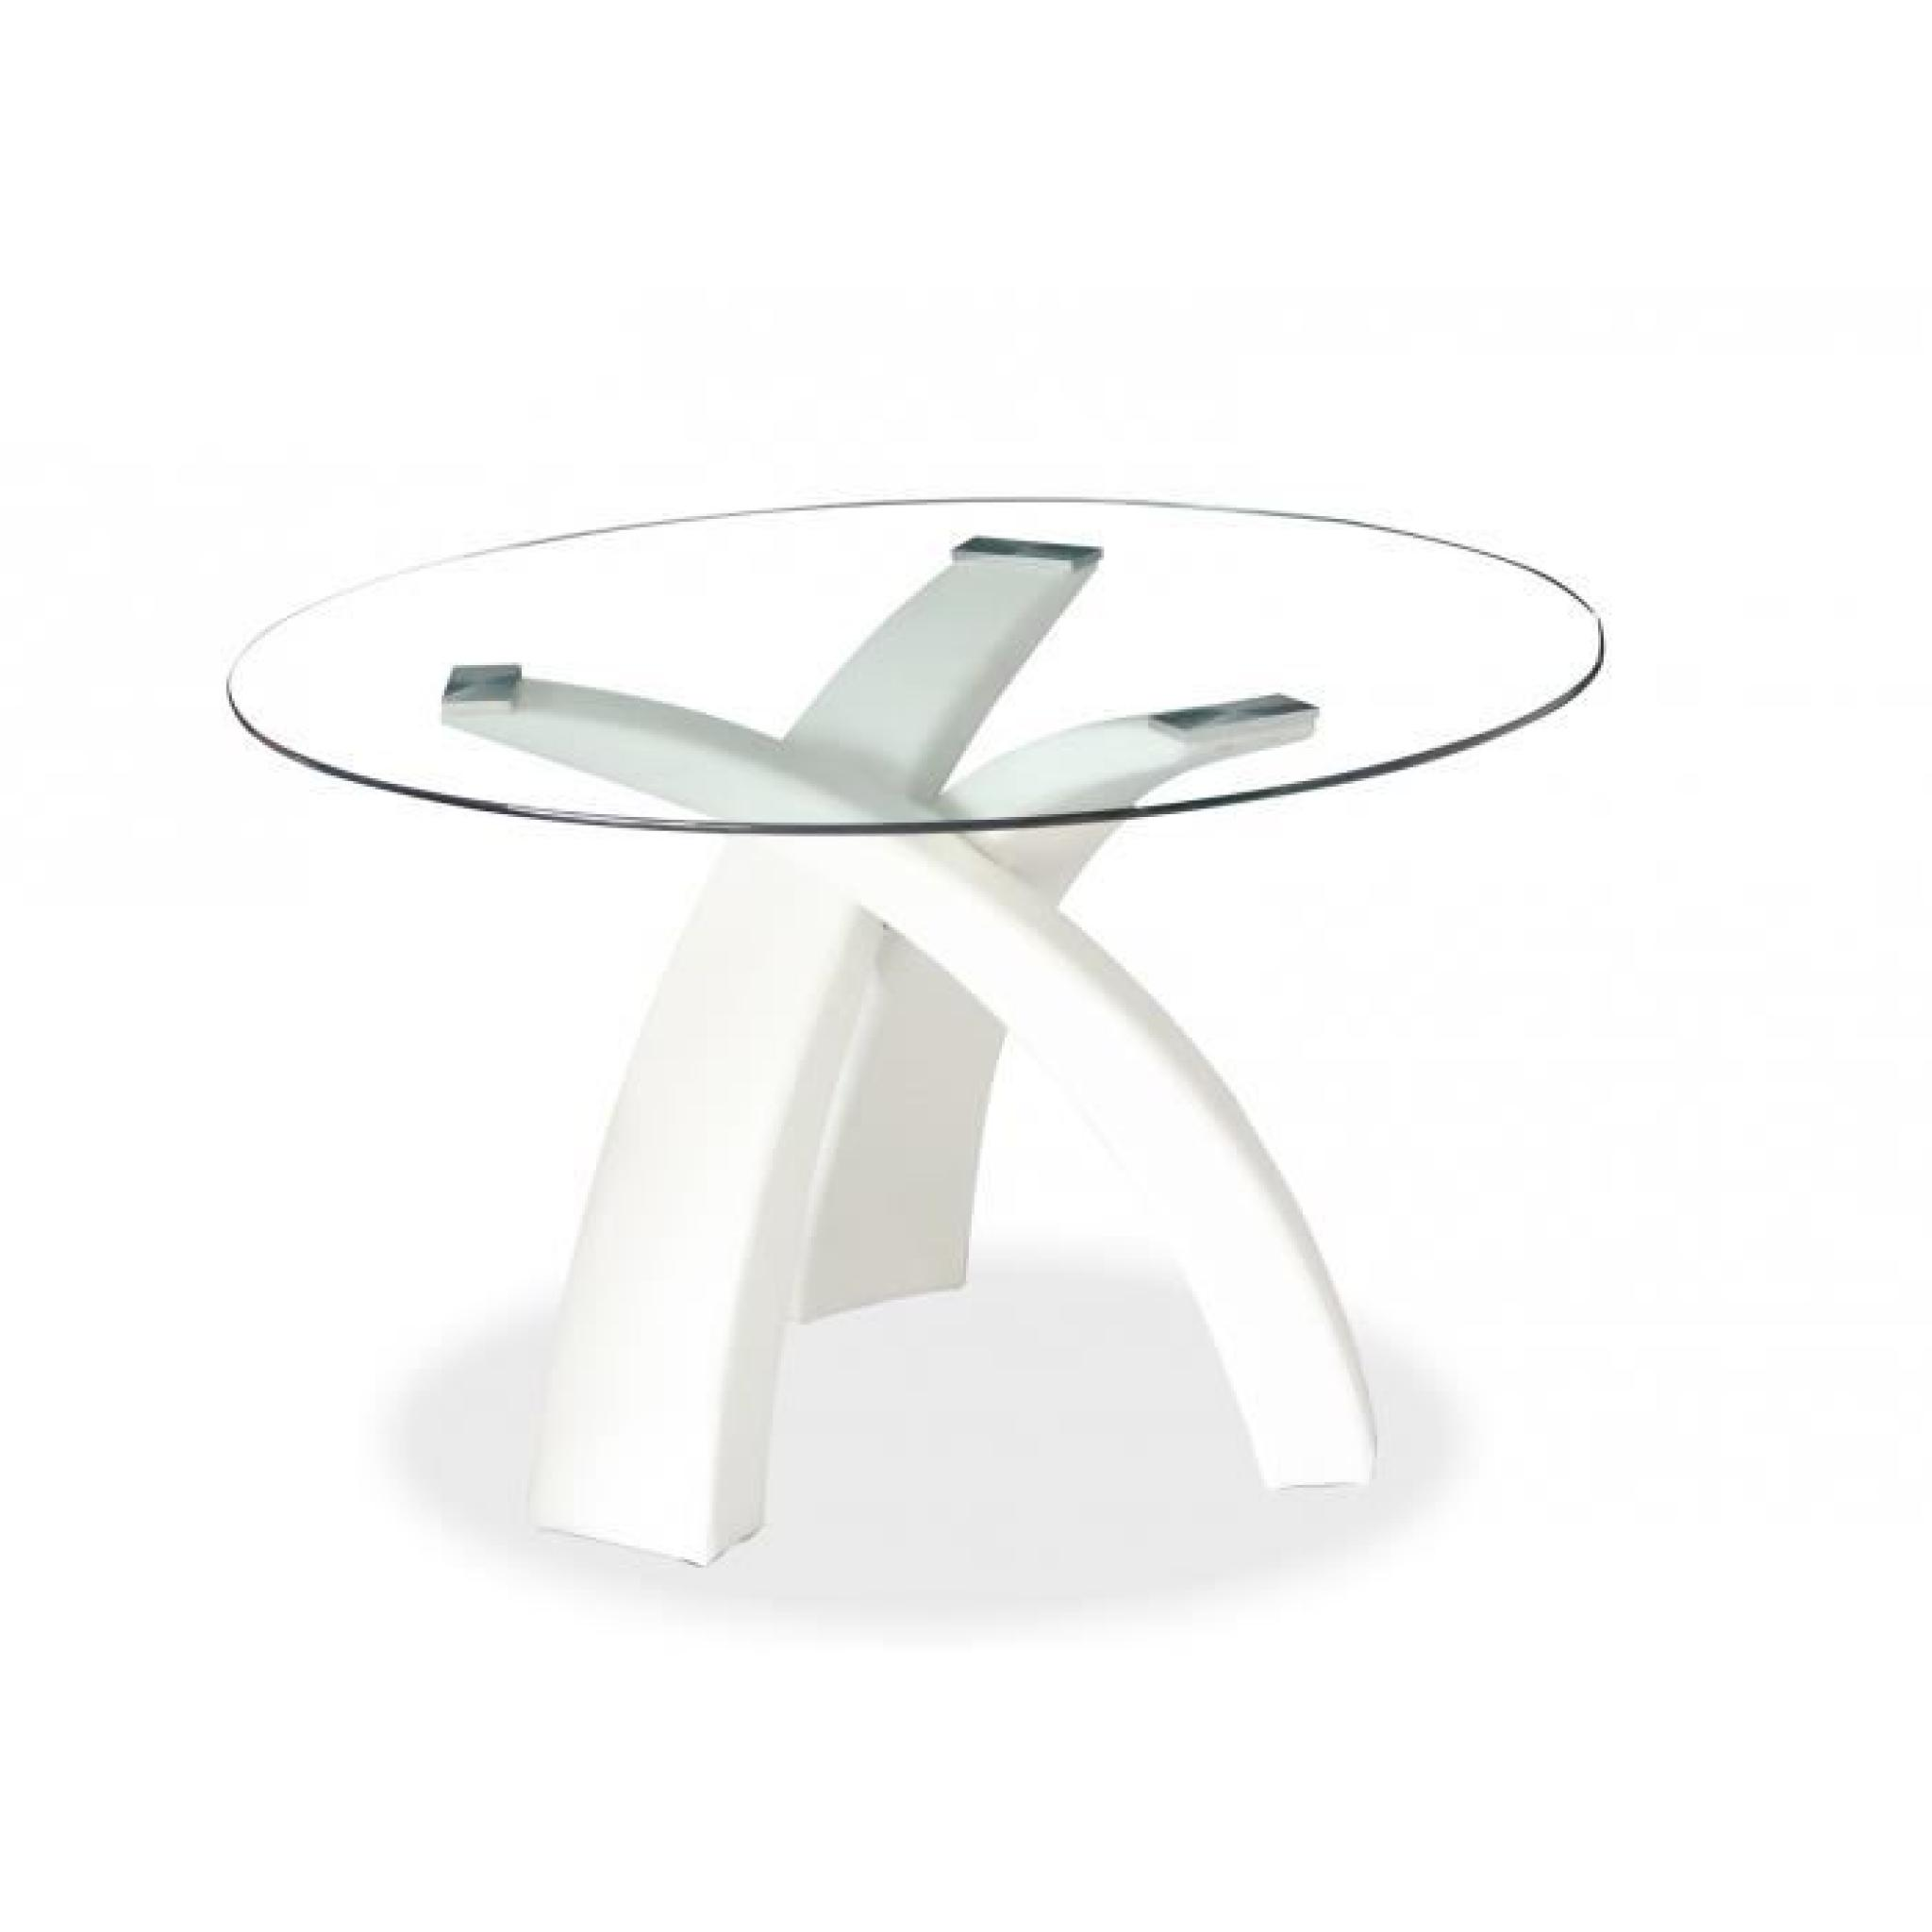 Table manger ronde blanche gore achat vente table for Table a manger ronde pas cher